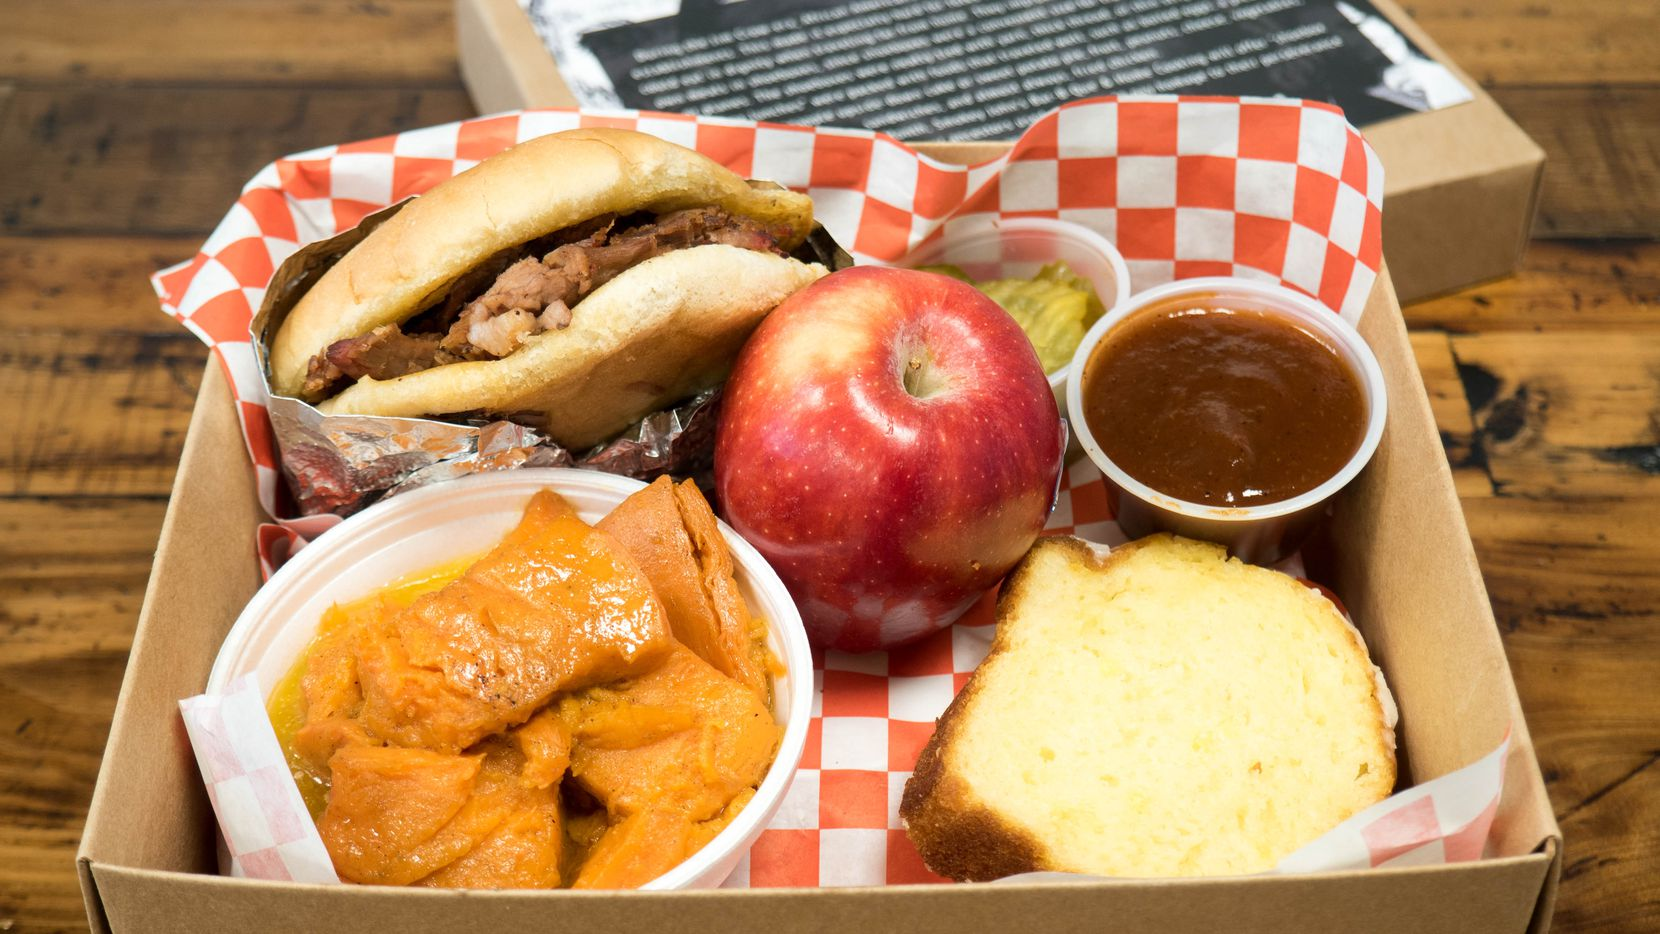 Smokey John's Bar-B-Que is selling shoebox lunches for $10.50 during the month of February, Black History Month.